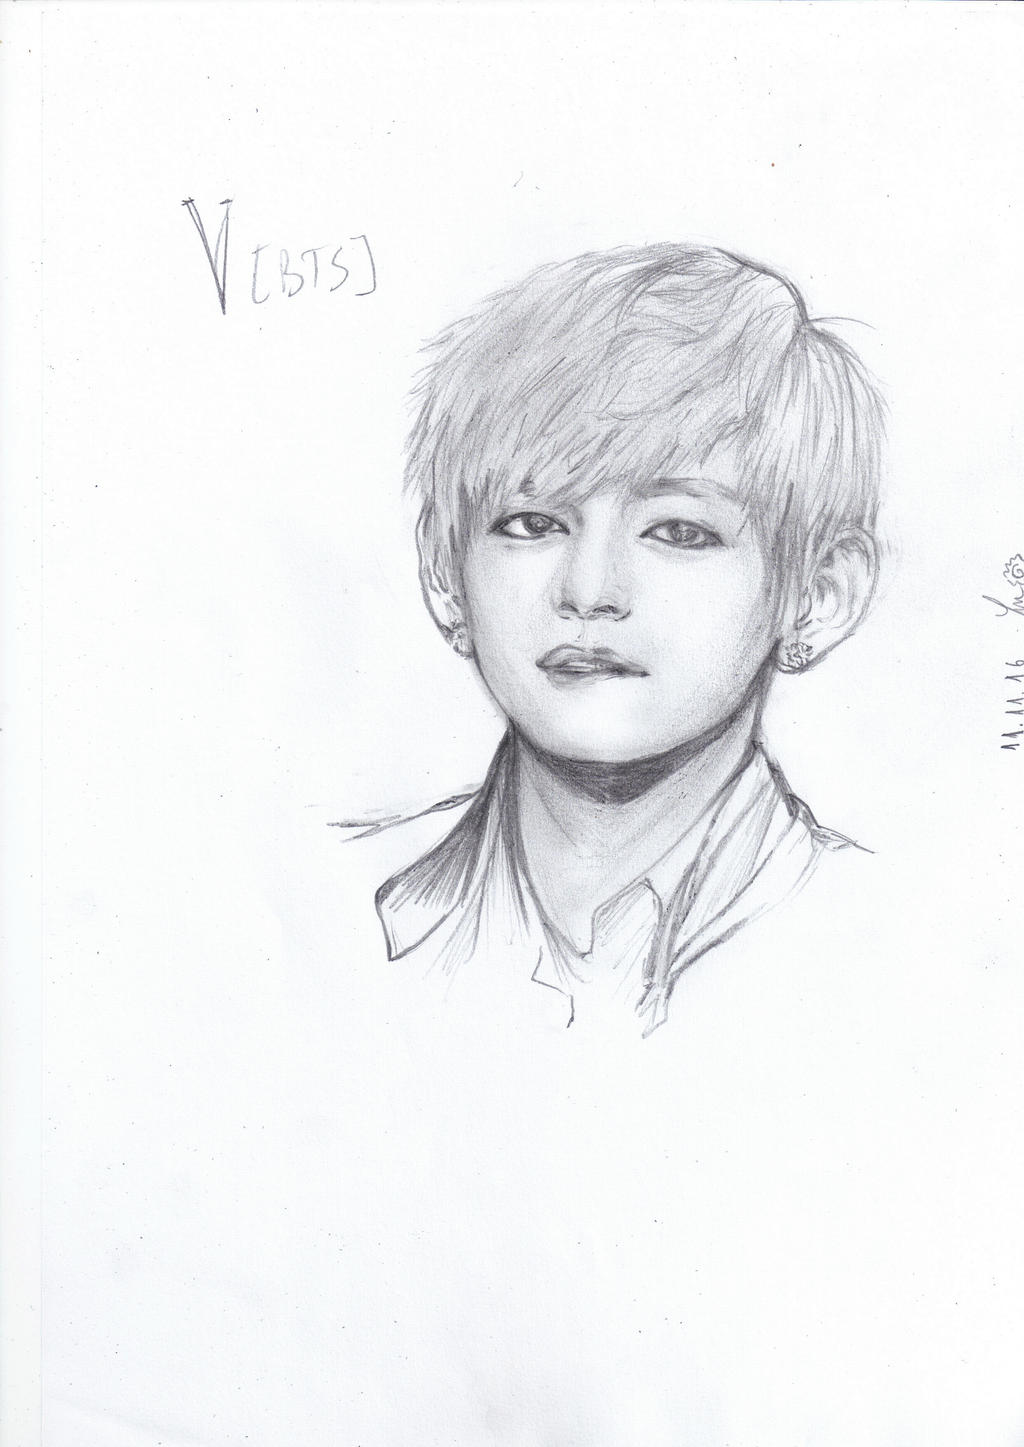 V Bts Drawing Bing Images Card From User